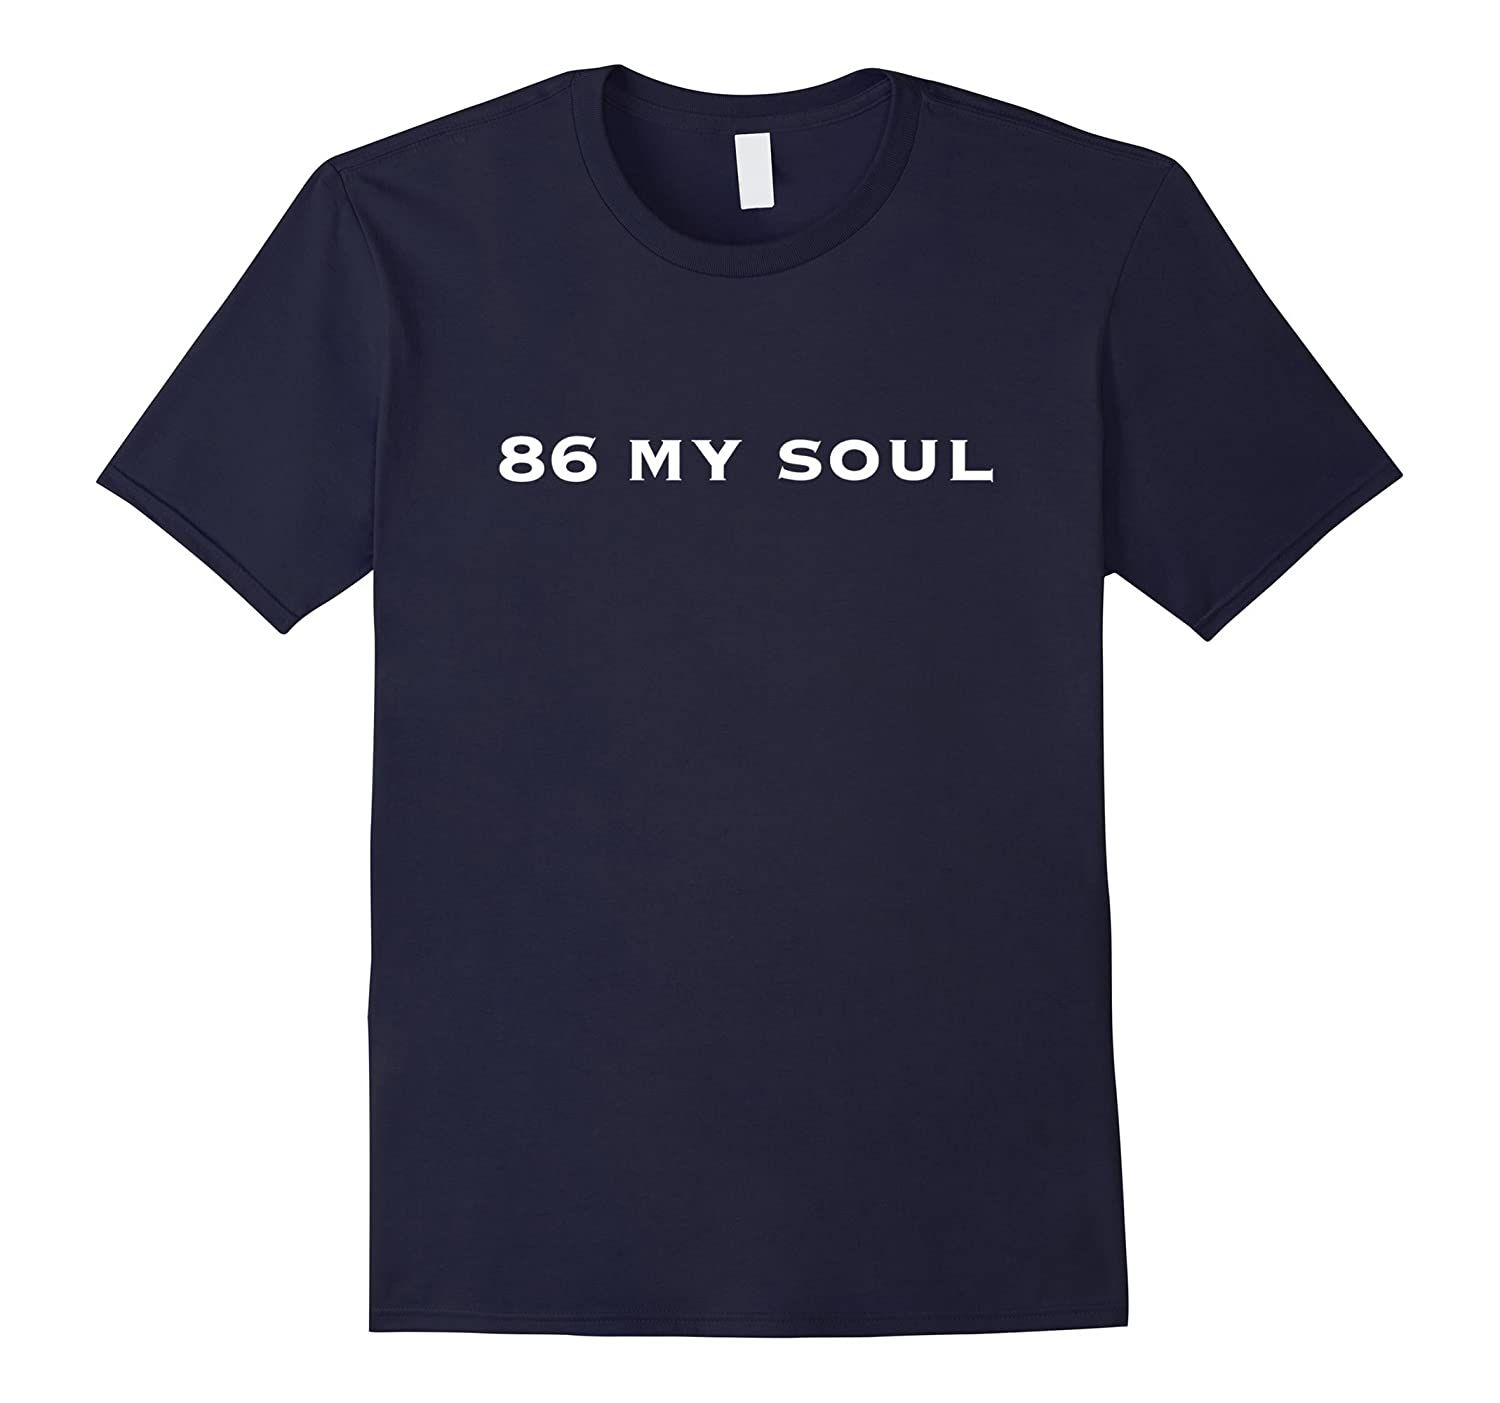 86 MY SOUL Novelty Hospitality Industry Shirt-PL